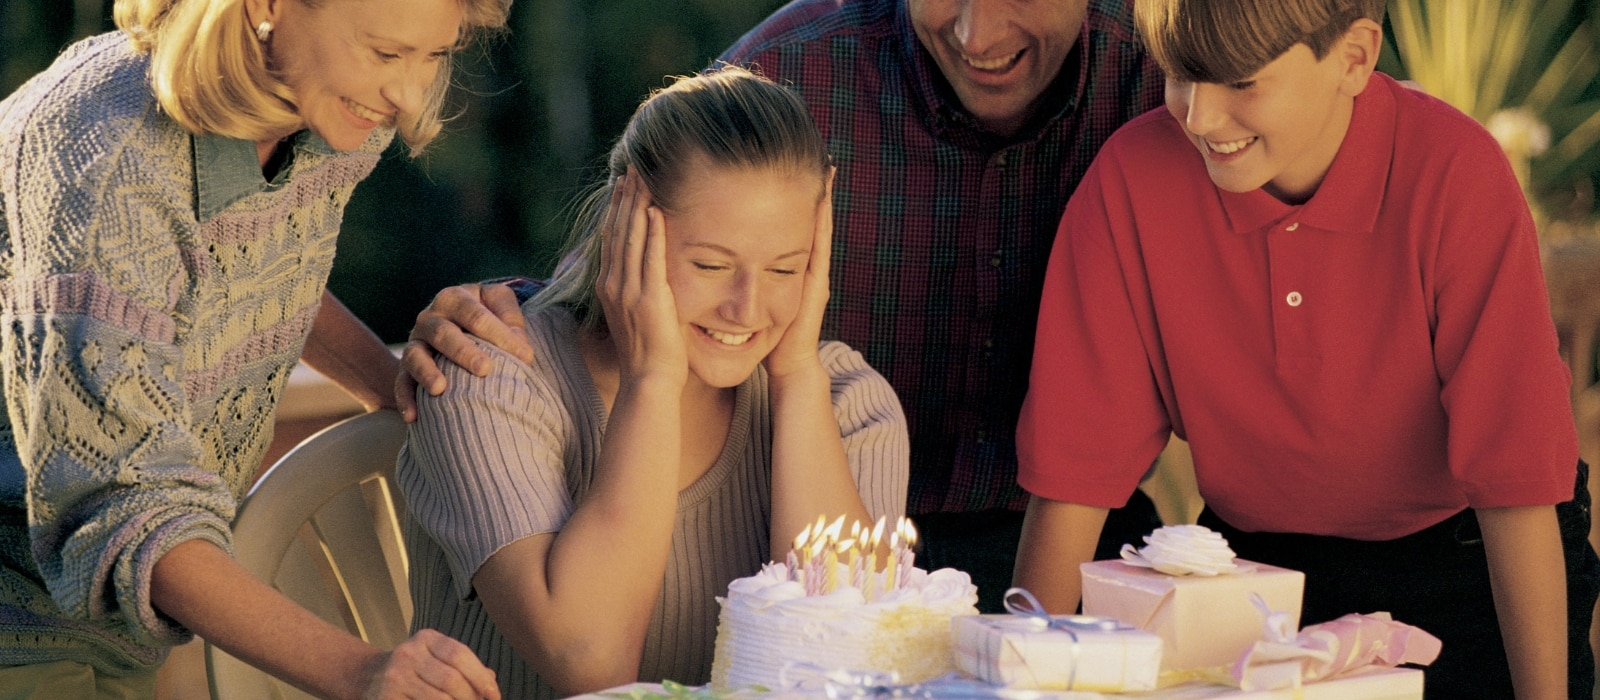 How to Throw a Surprise Party - for a teen